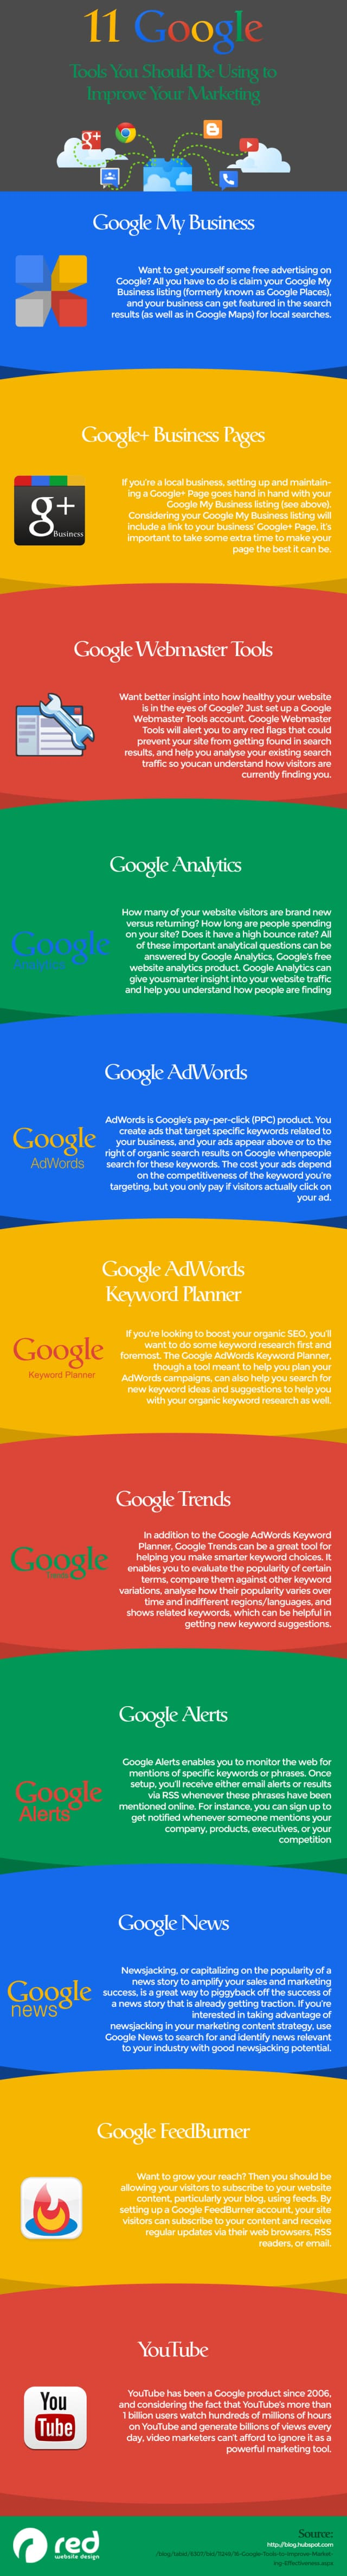 11-google-tools-you-should-be-using-to-improve-your-marketing